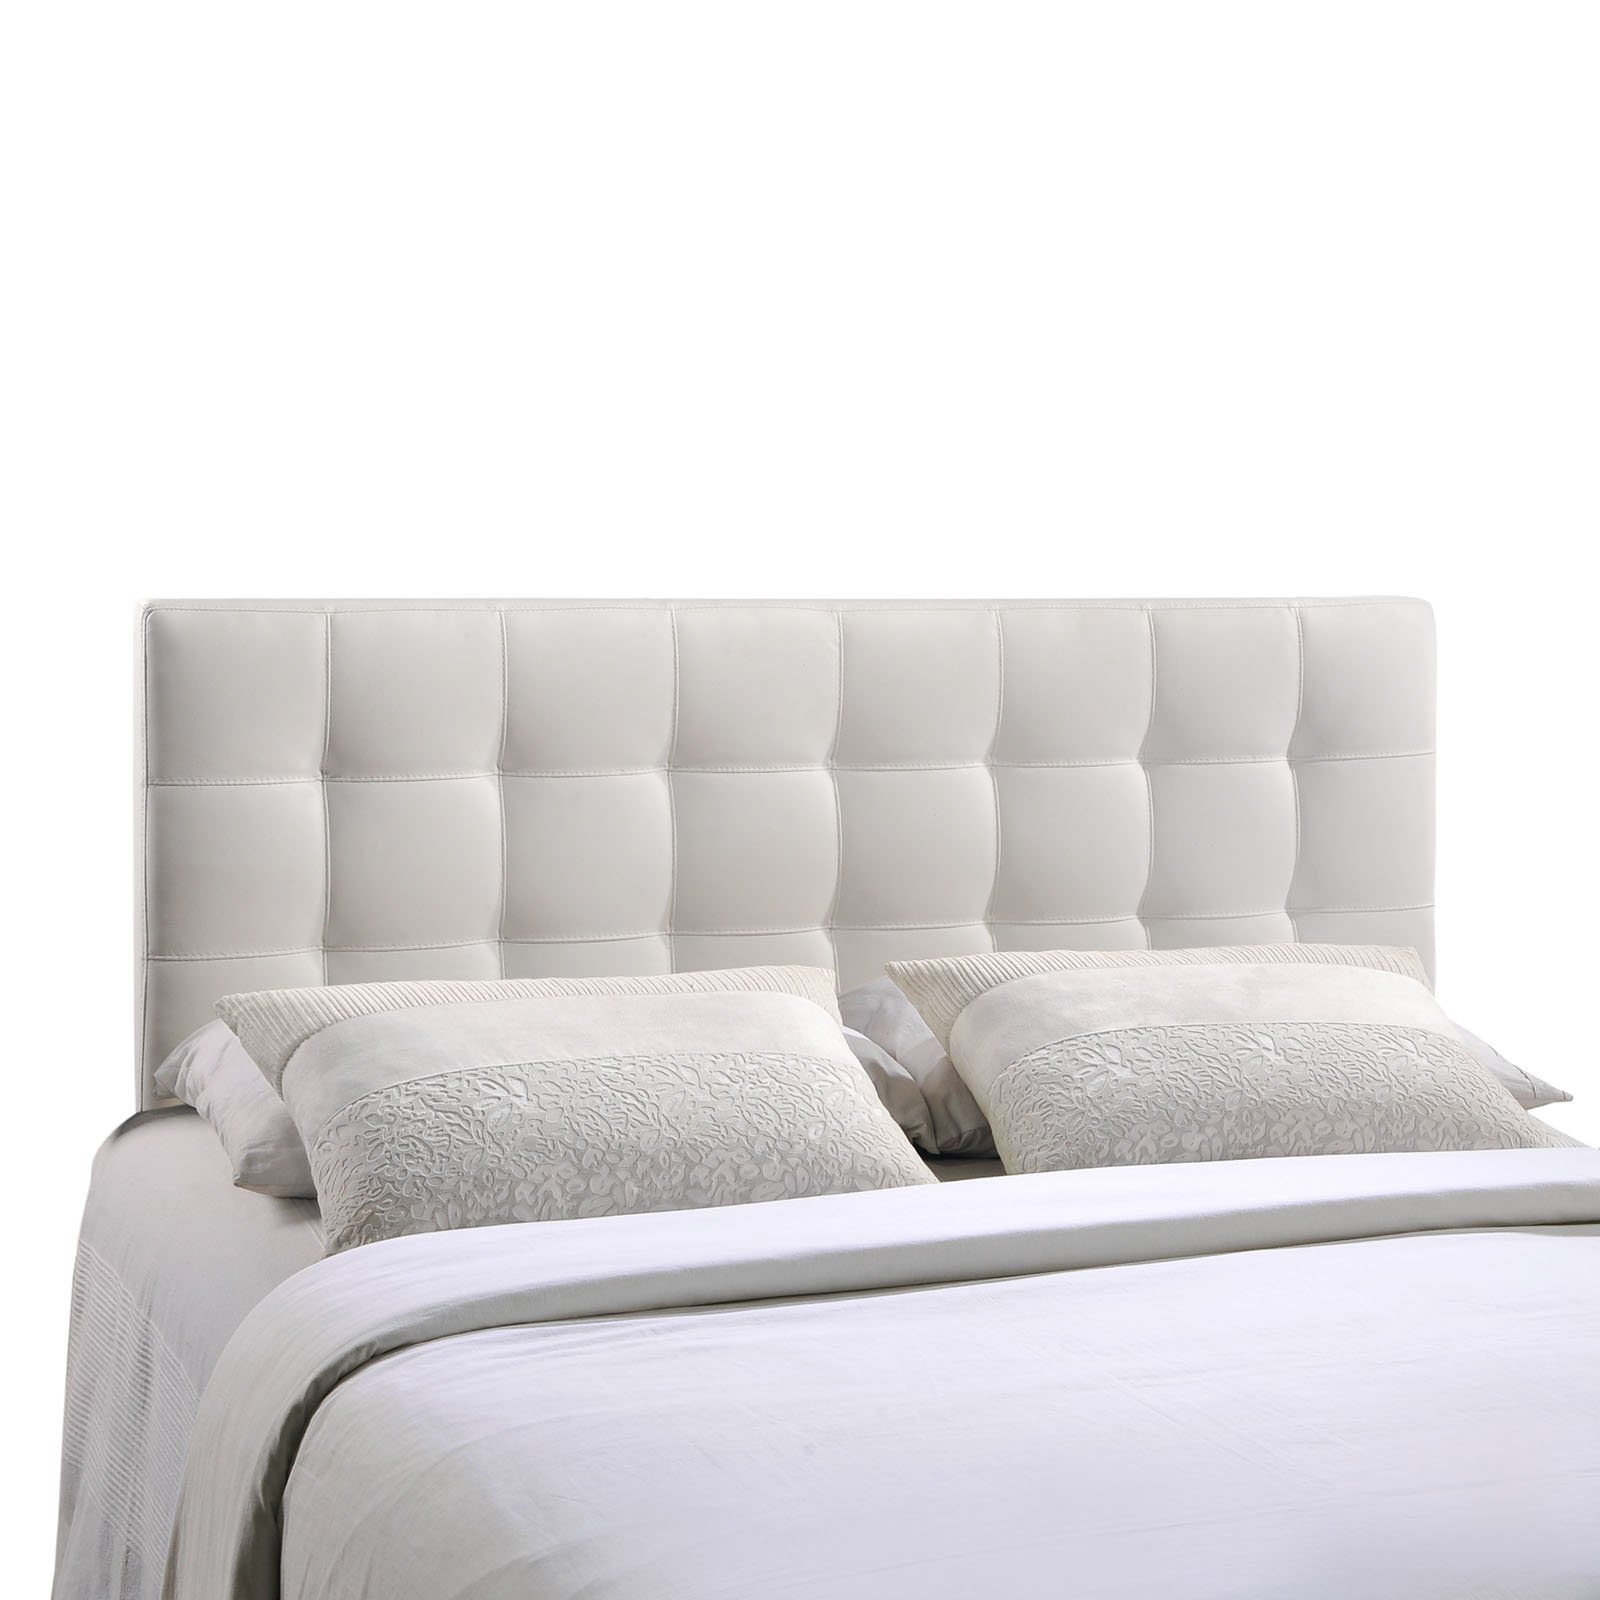 Modway Lily Tufted Faux Leather Upholstered Queen Headboard in White by Modway